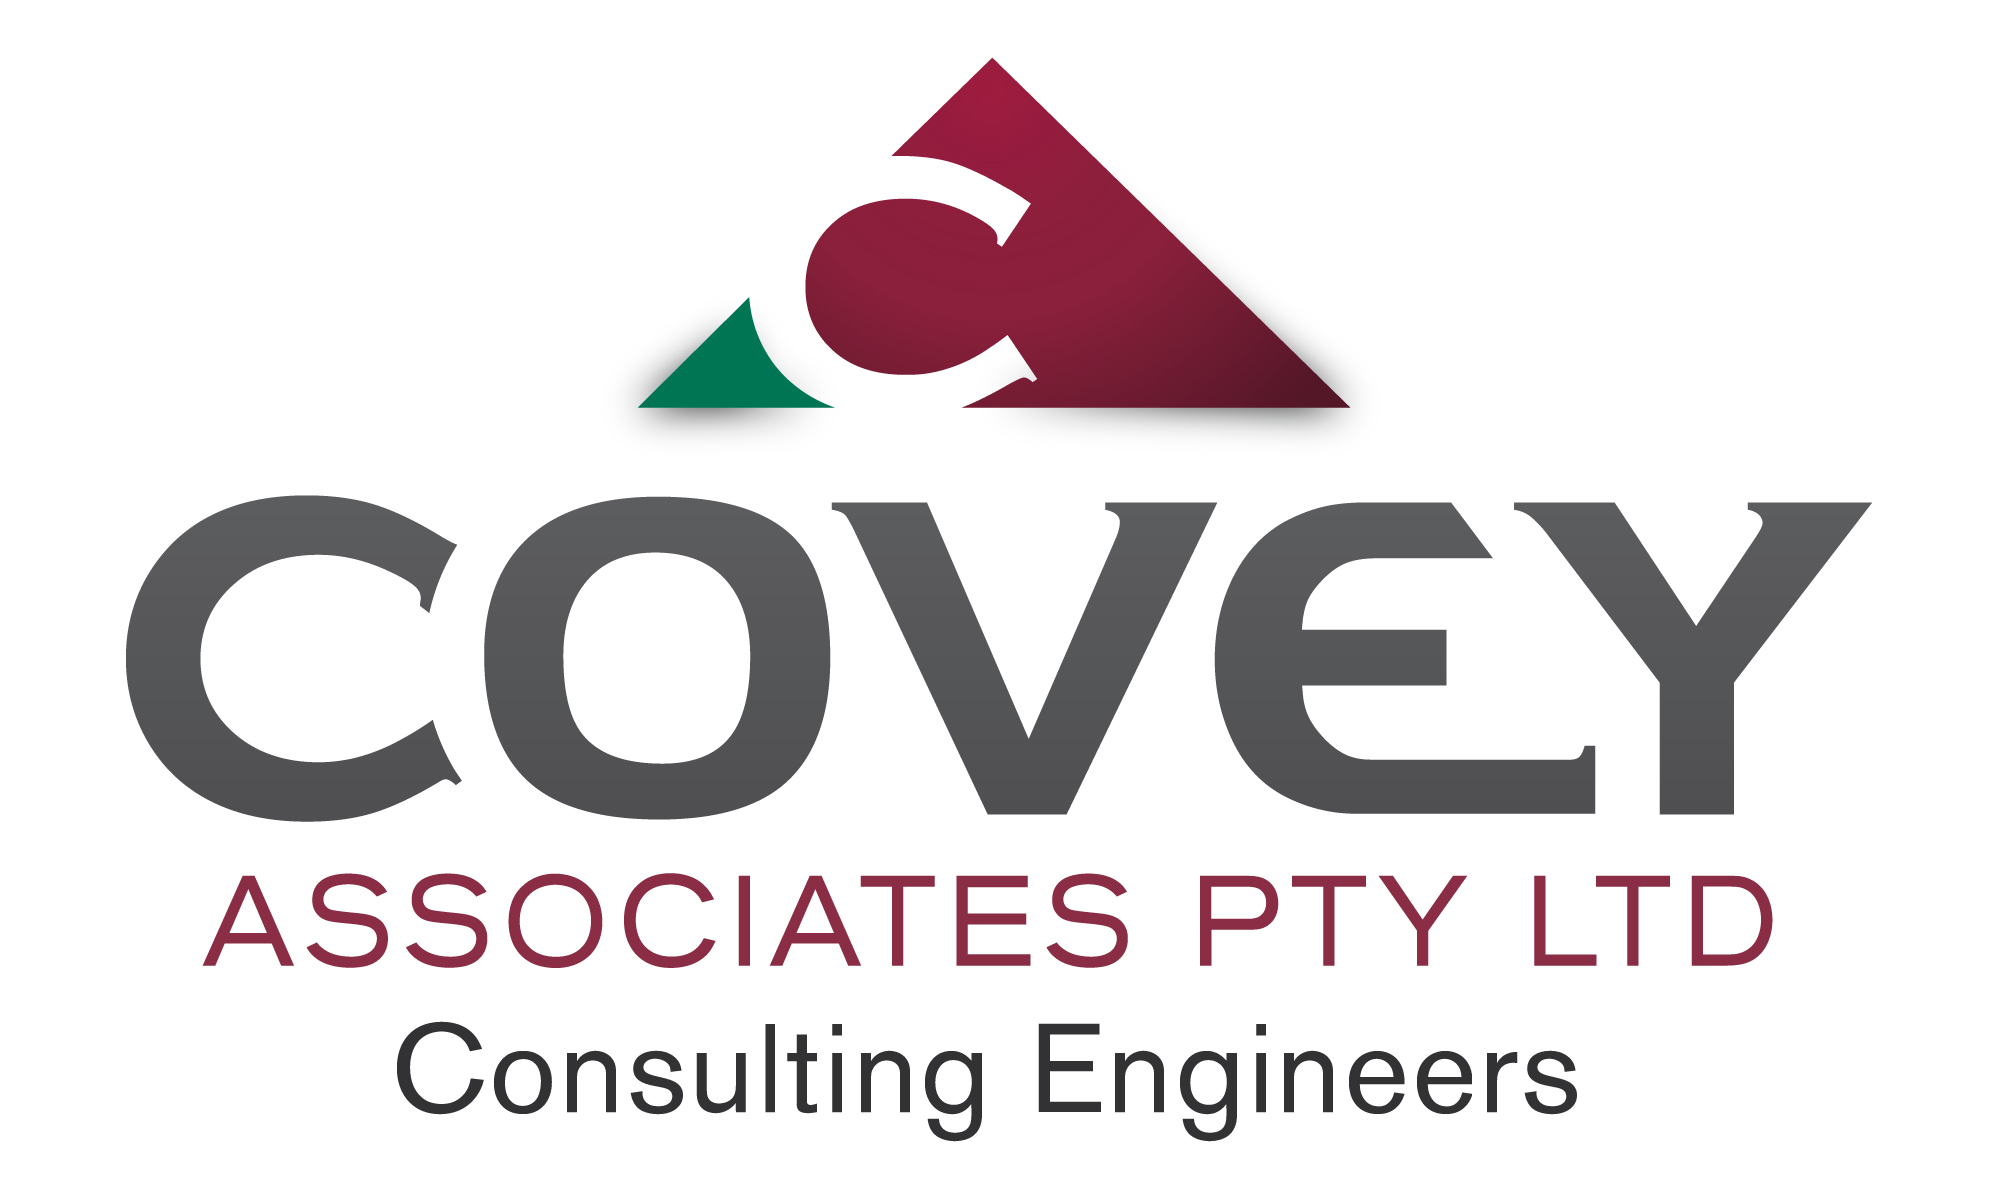 Covey Associates Pty Ltd